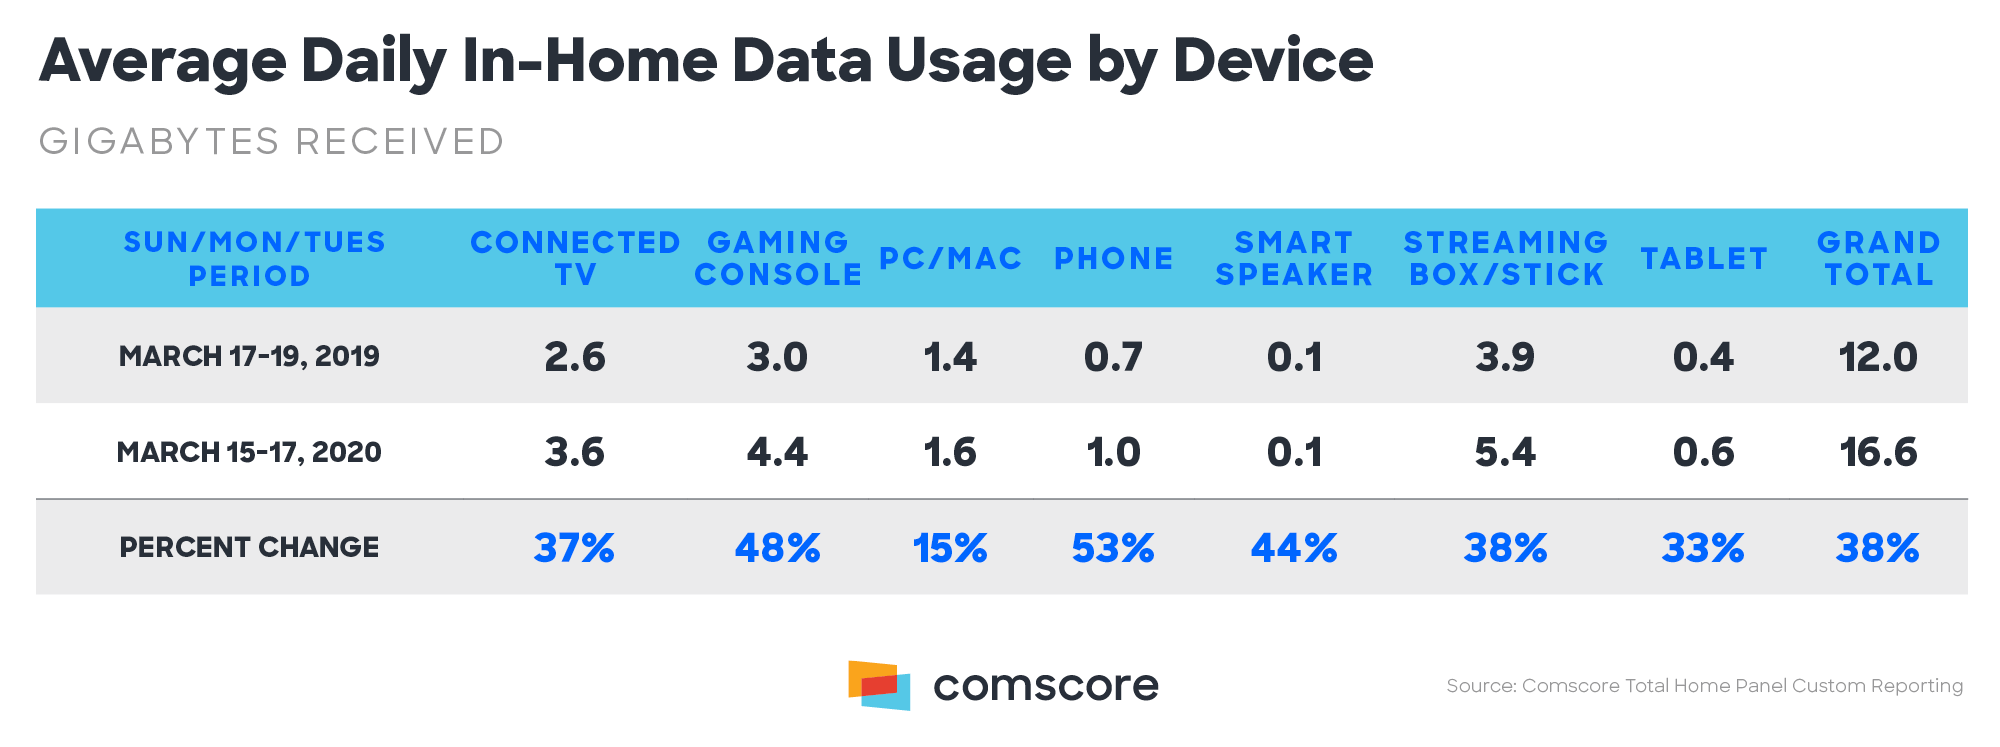 Coronavirus - data usage by device in-home